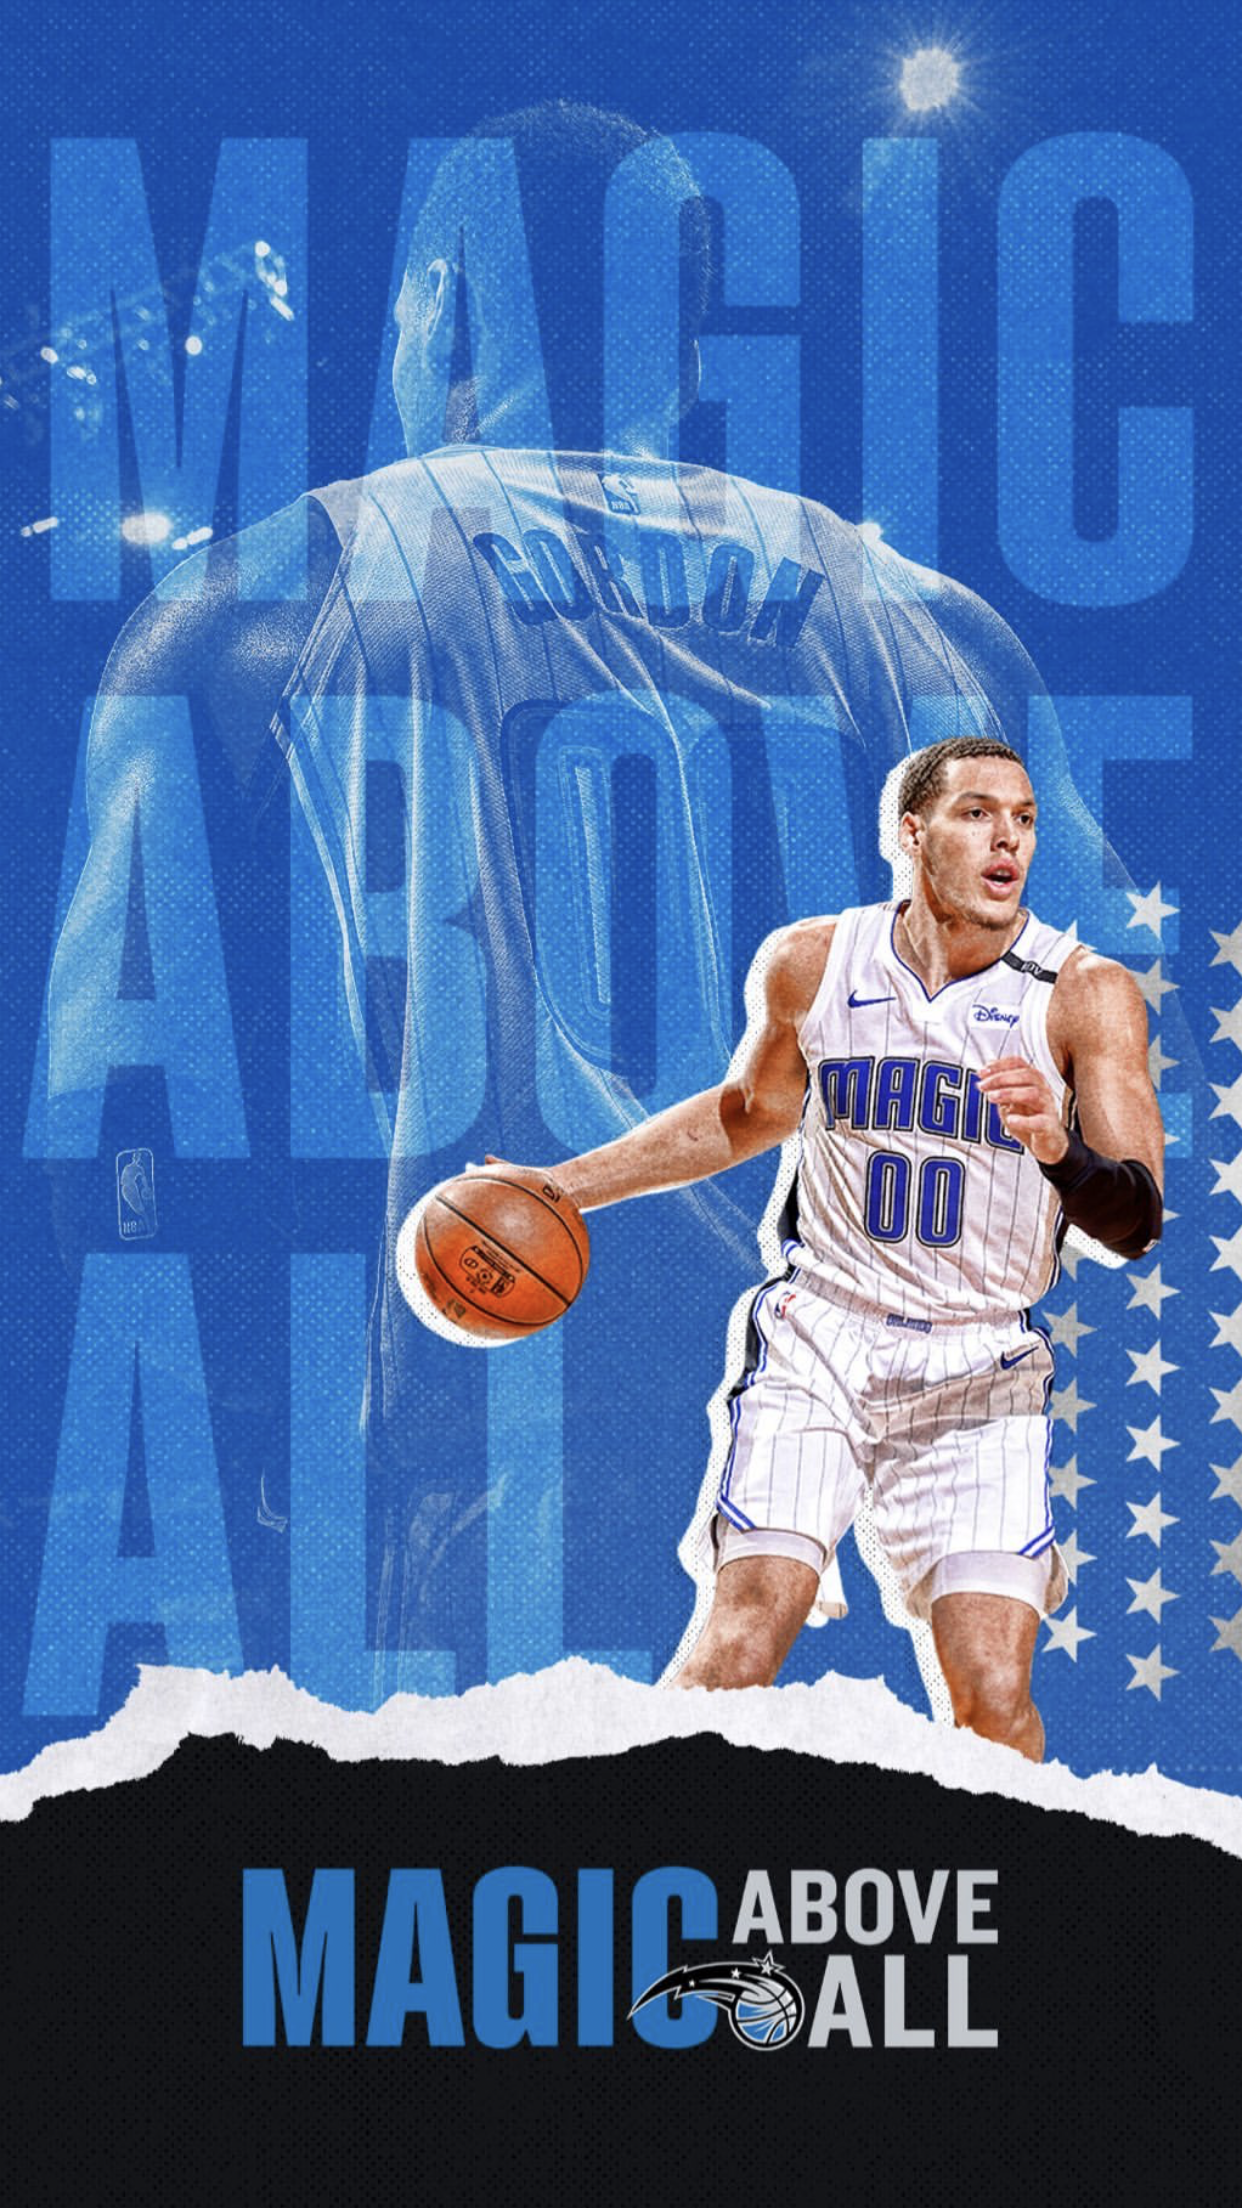 Orlando Magic Wallpaper 2019 Ag Aaron Gordon 00 Orlando Magic Sports Graphic Design Orlando